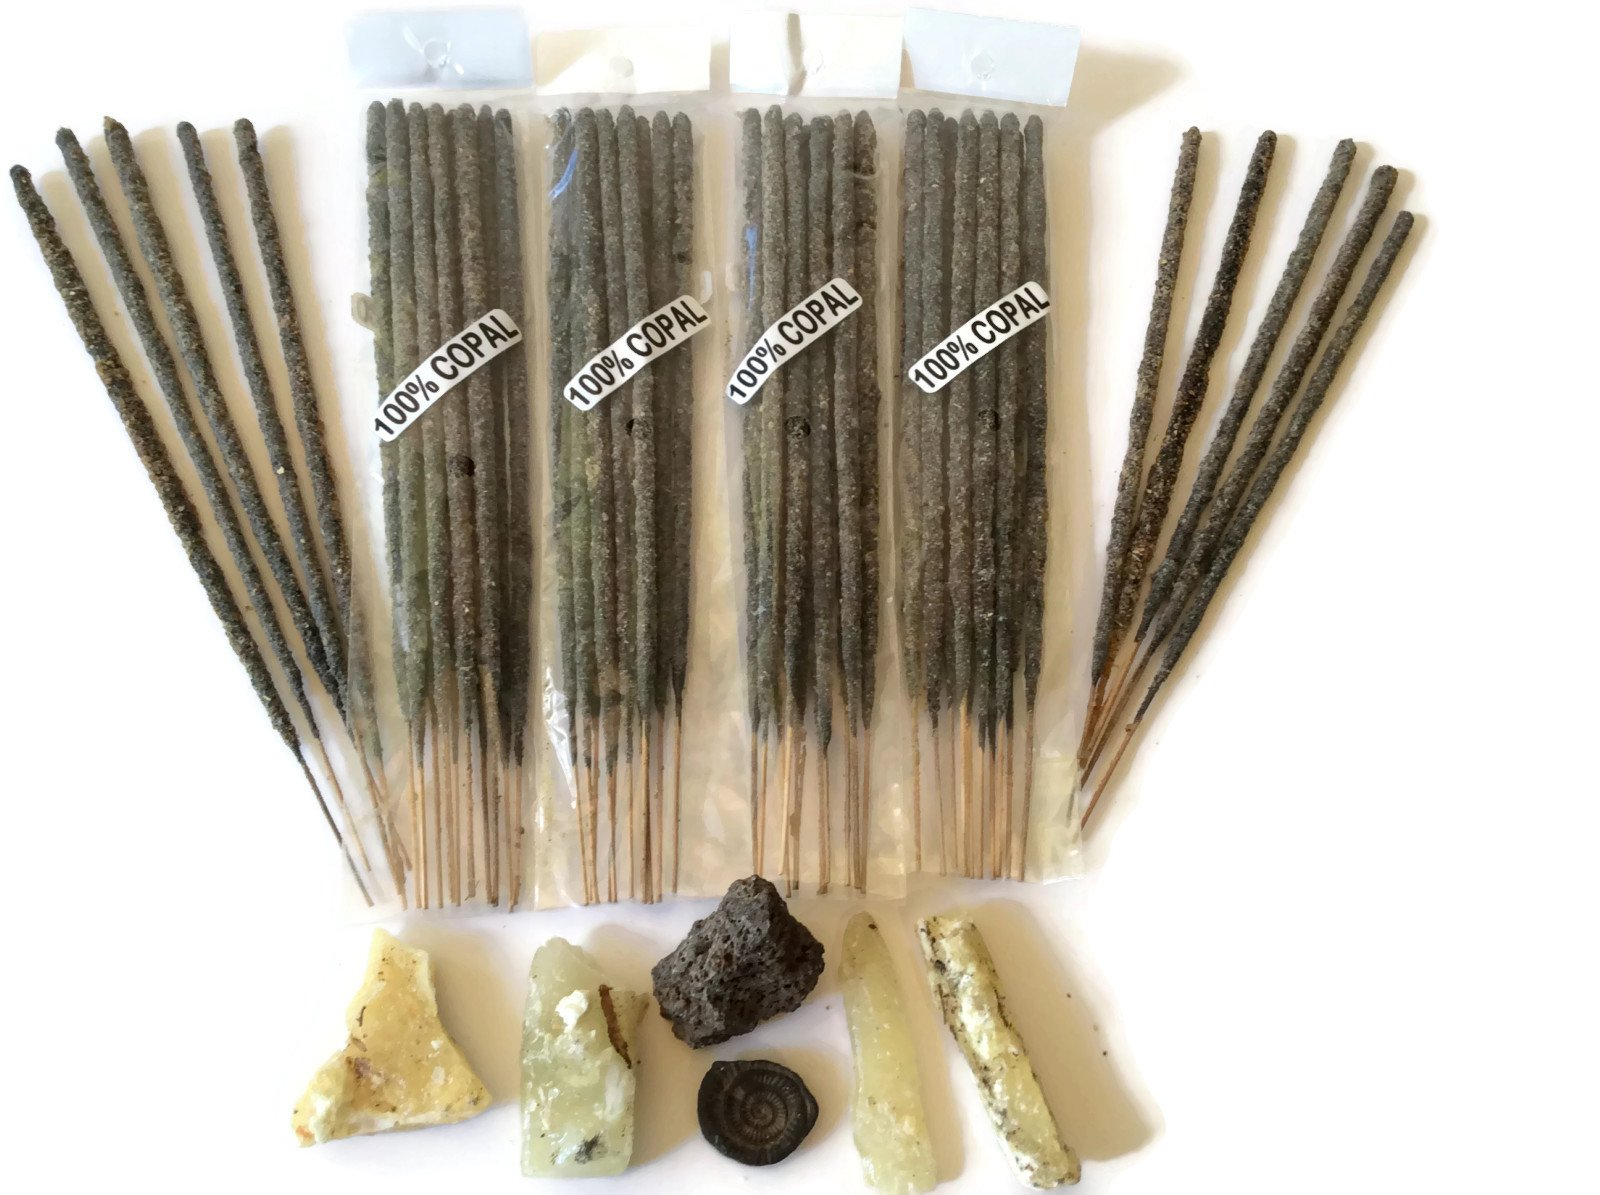 Templo Totonaca Mexican Copal Incense 500 Sticks Handmade in Mexico with Authentic Copal Resin. by Templo Totonaca